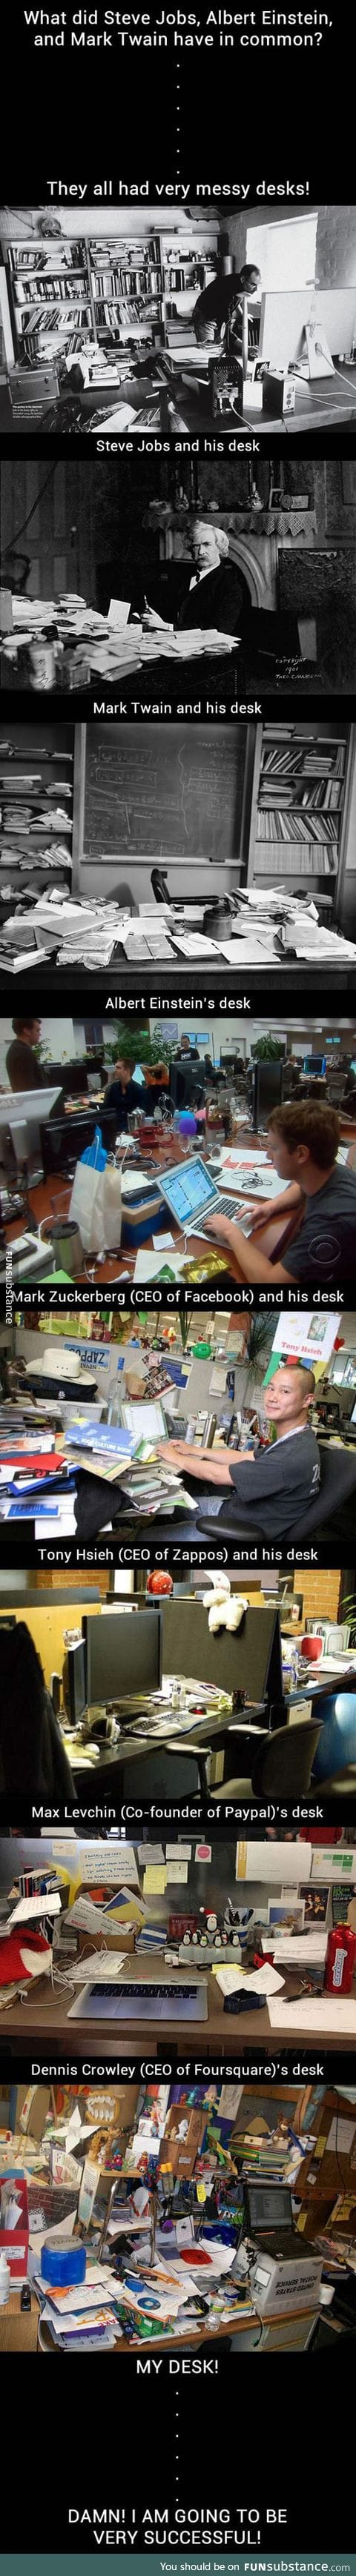 Successful people who have messy desks